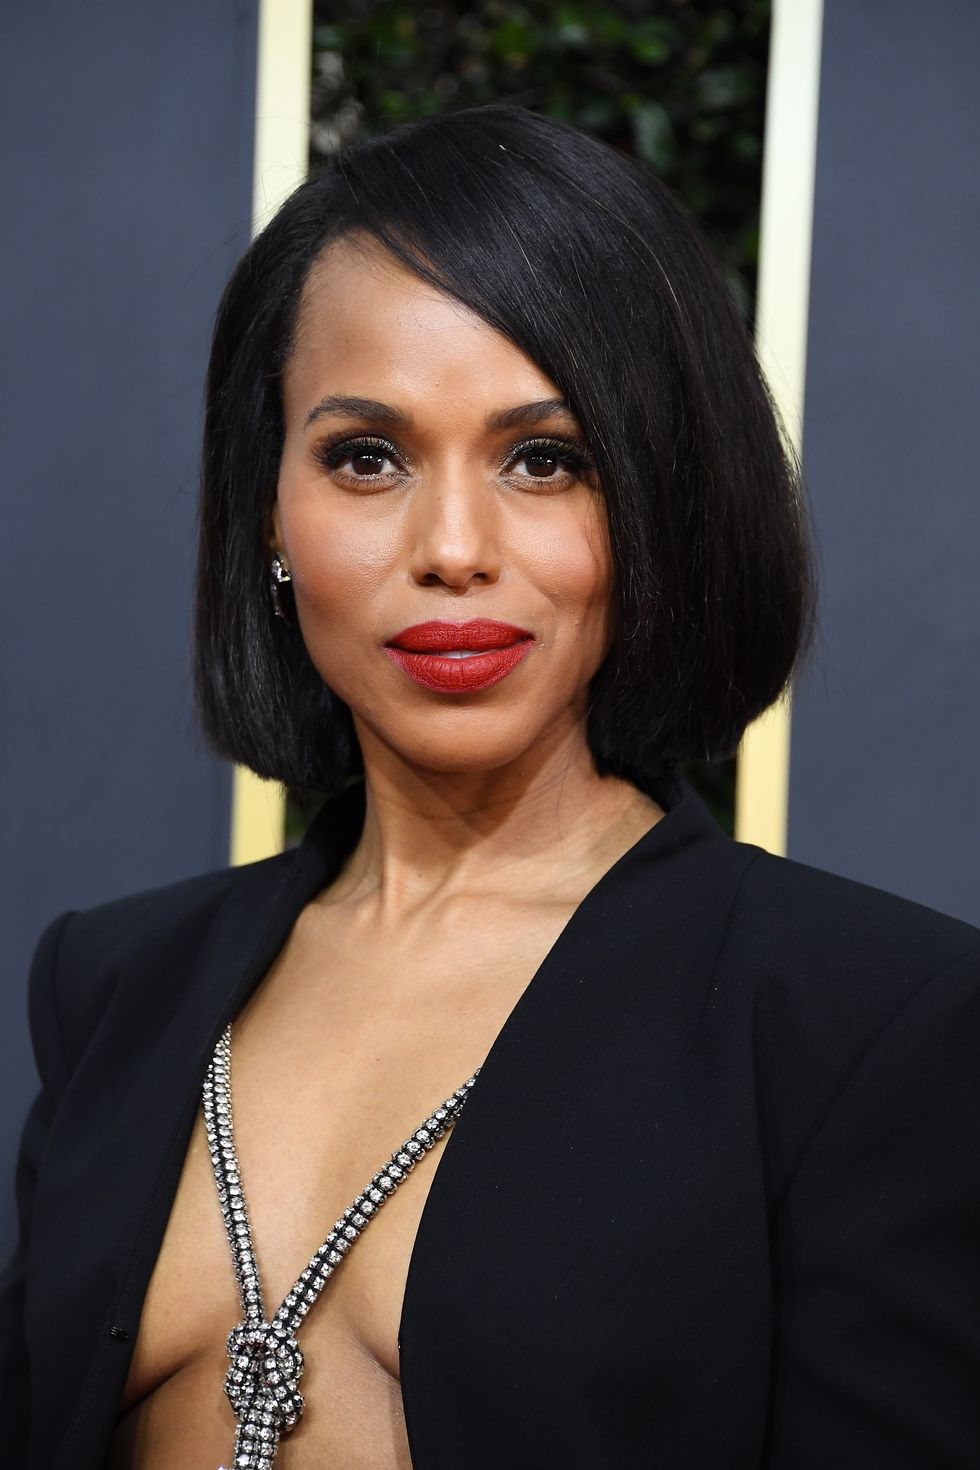 2020-beauty-trends-kerry-washington-boss-bob-hairstyle